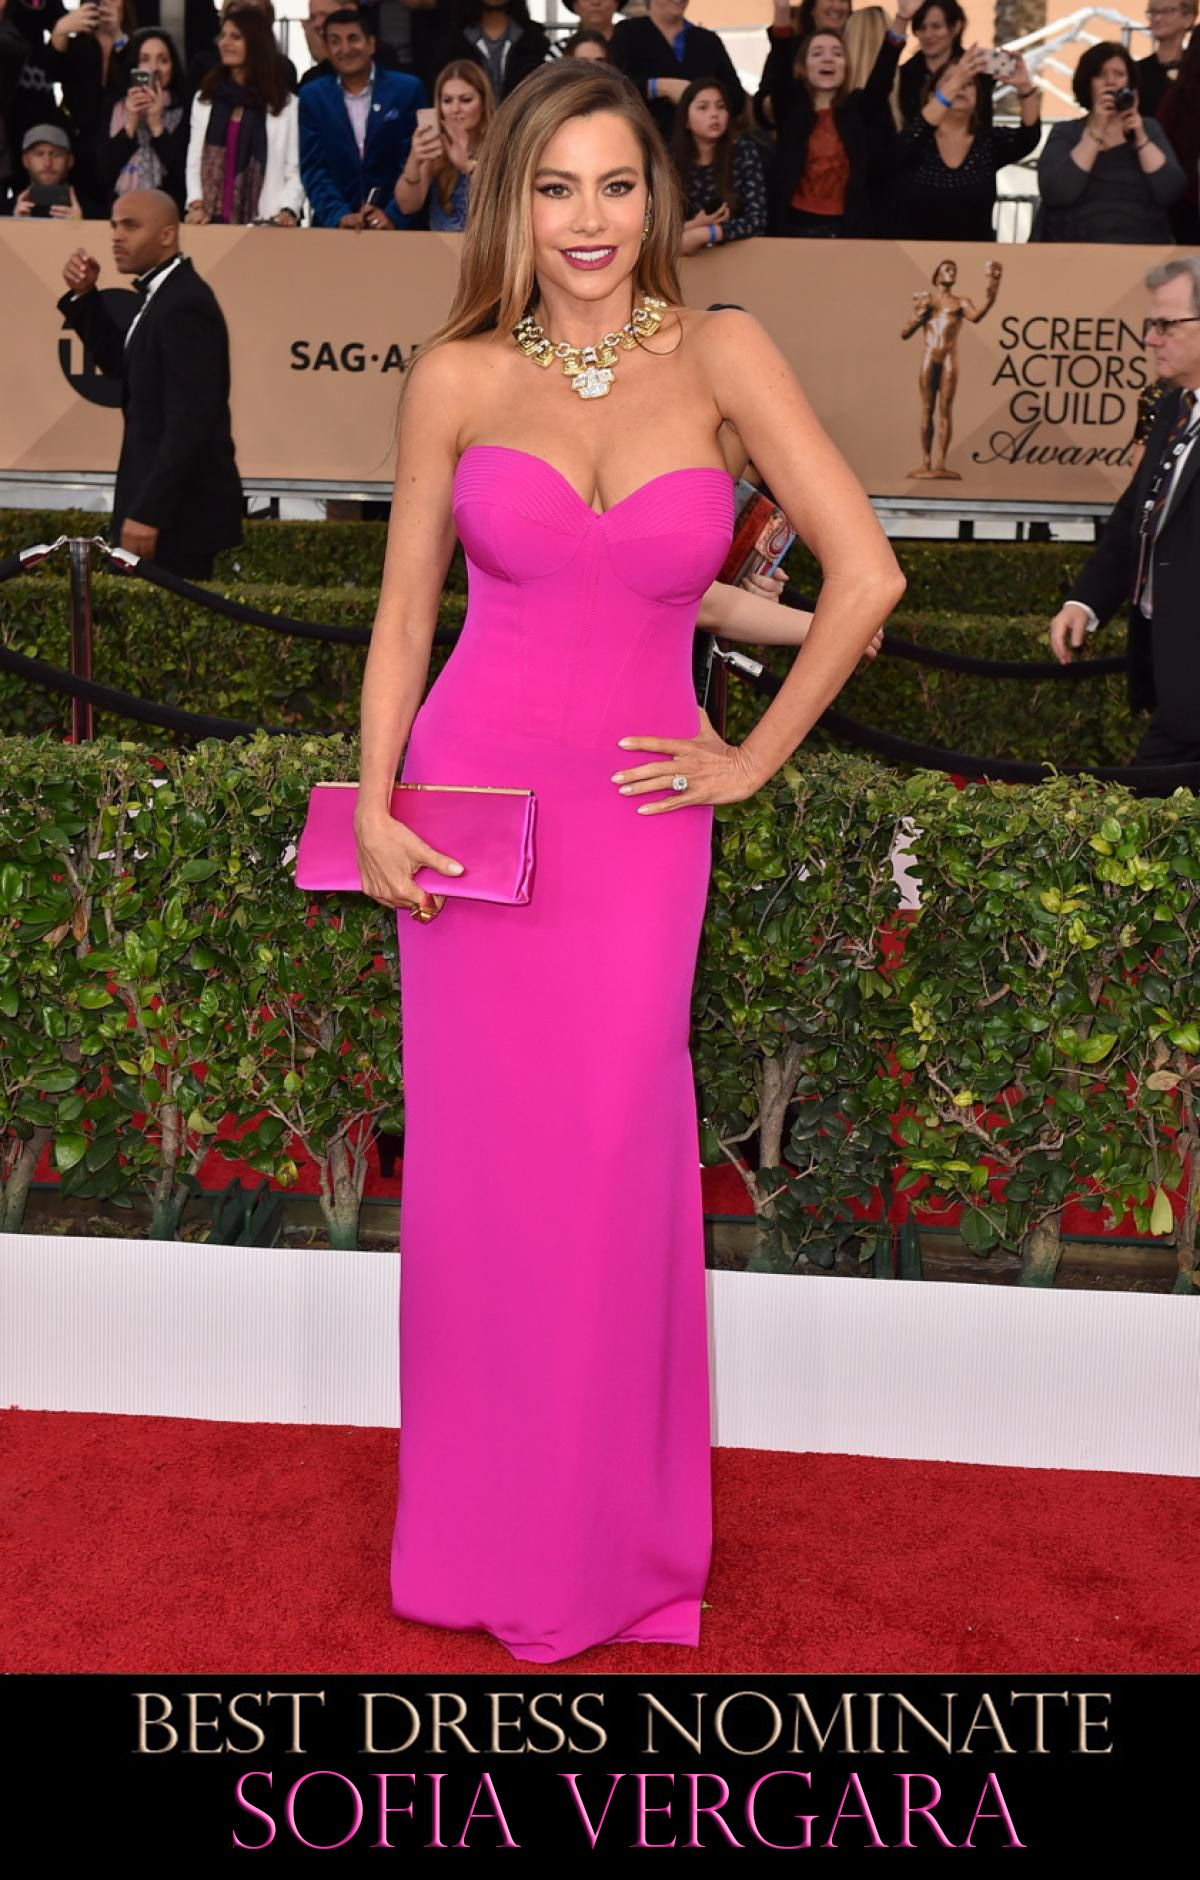 SAG Awards 2016 Red Carpet | Pinterest | Sofía vergara, Vestidos ...